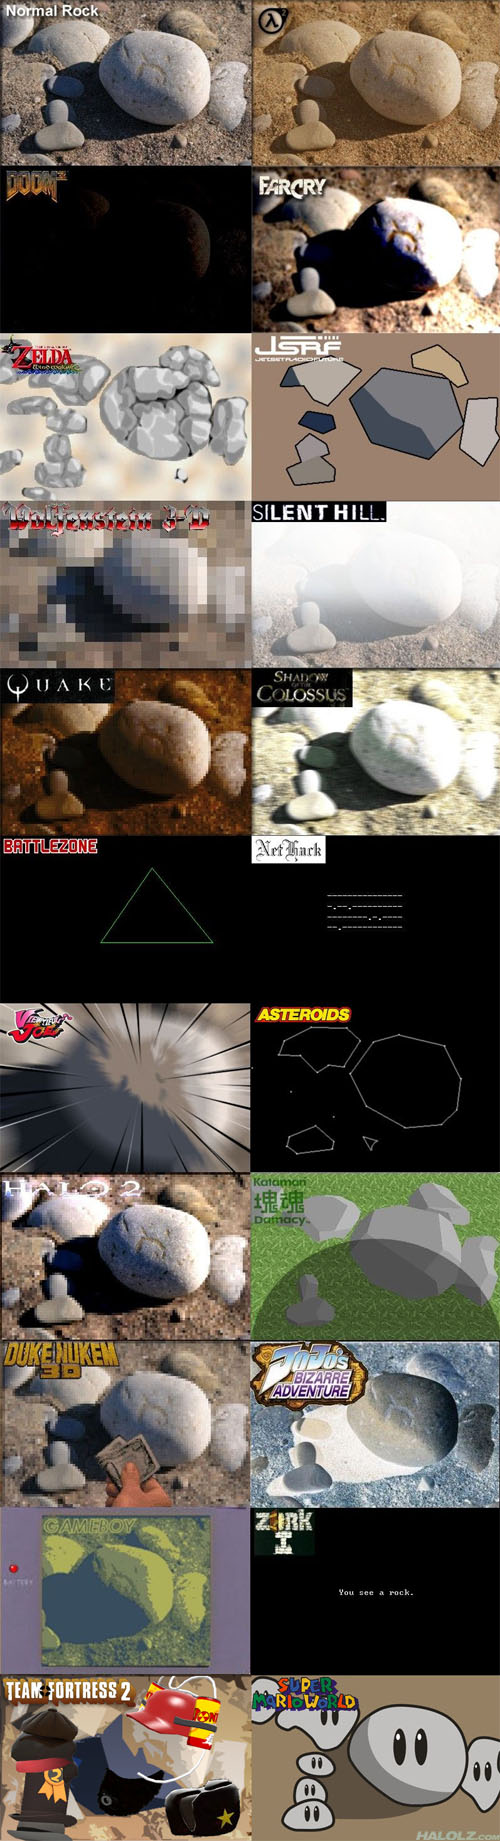 The Many Rocks of Video Games